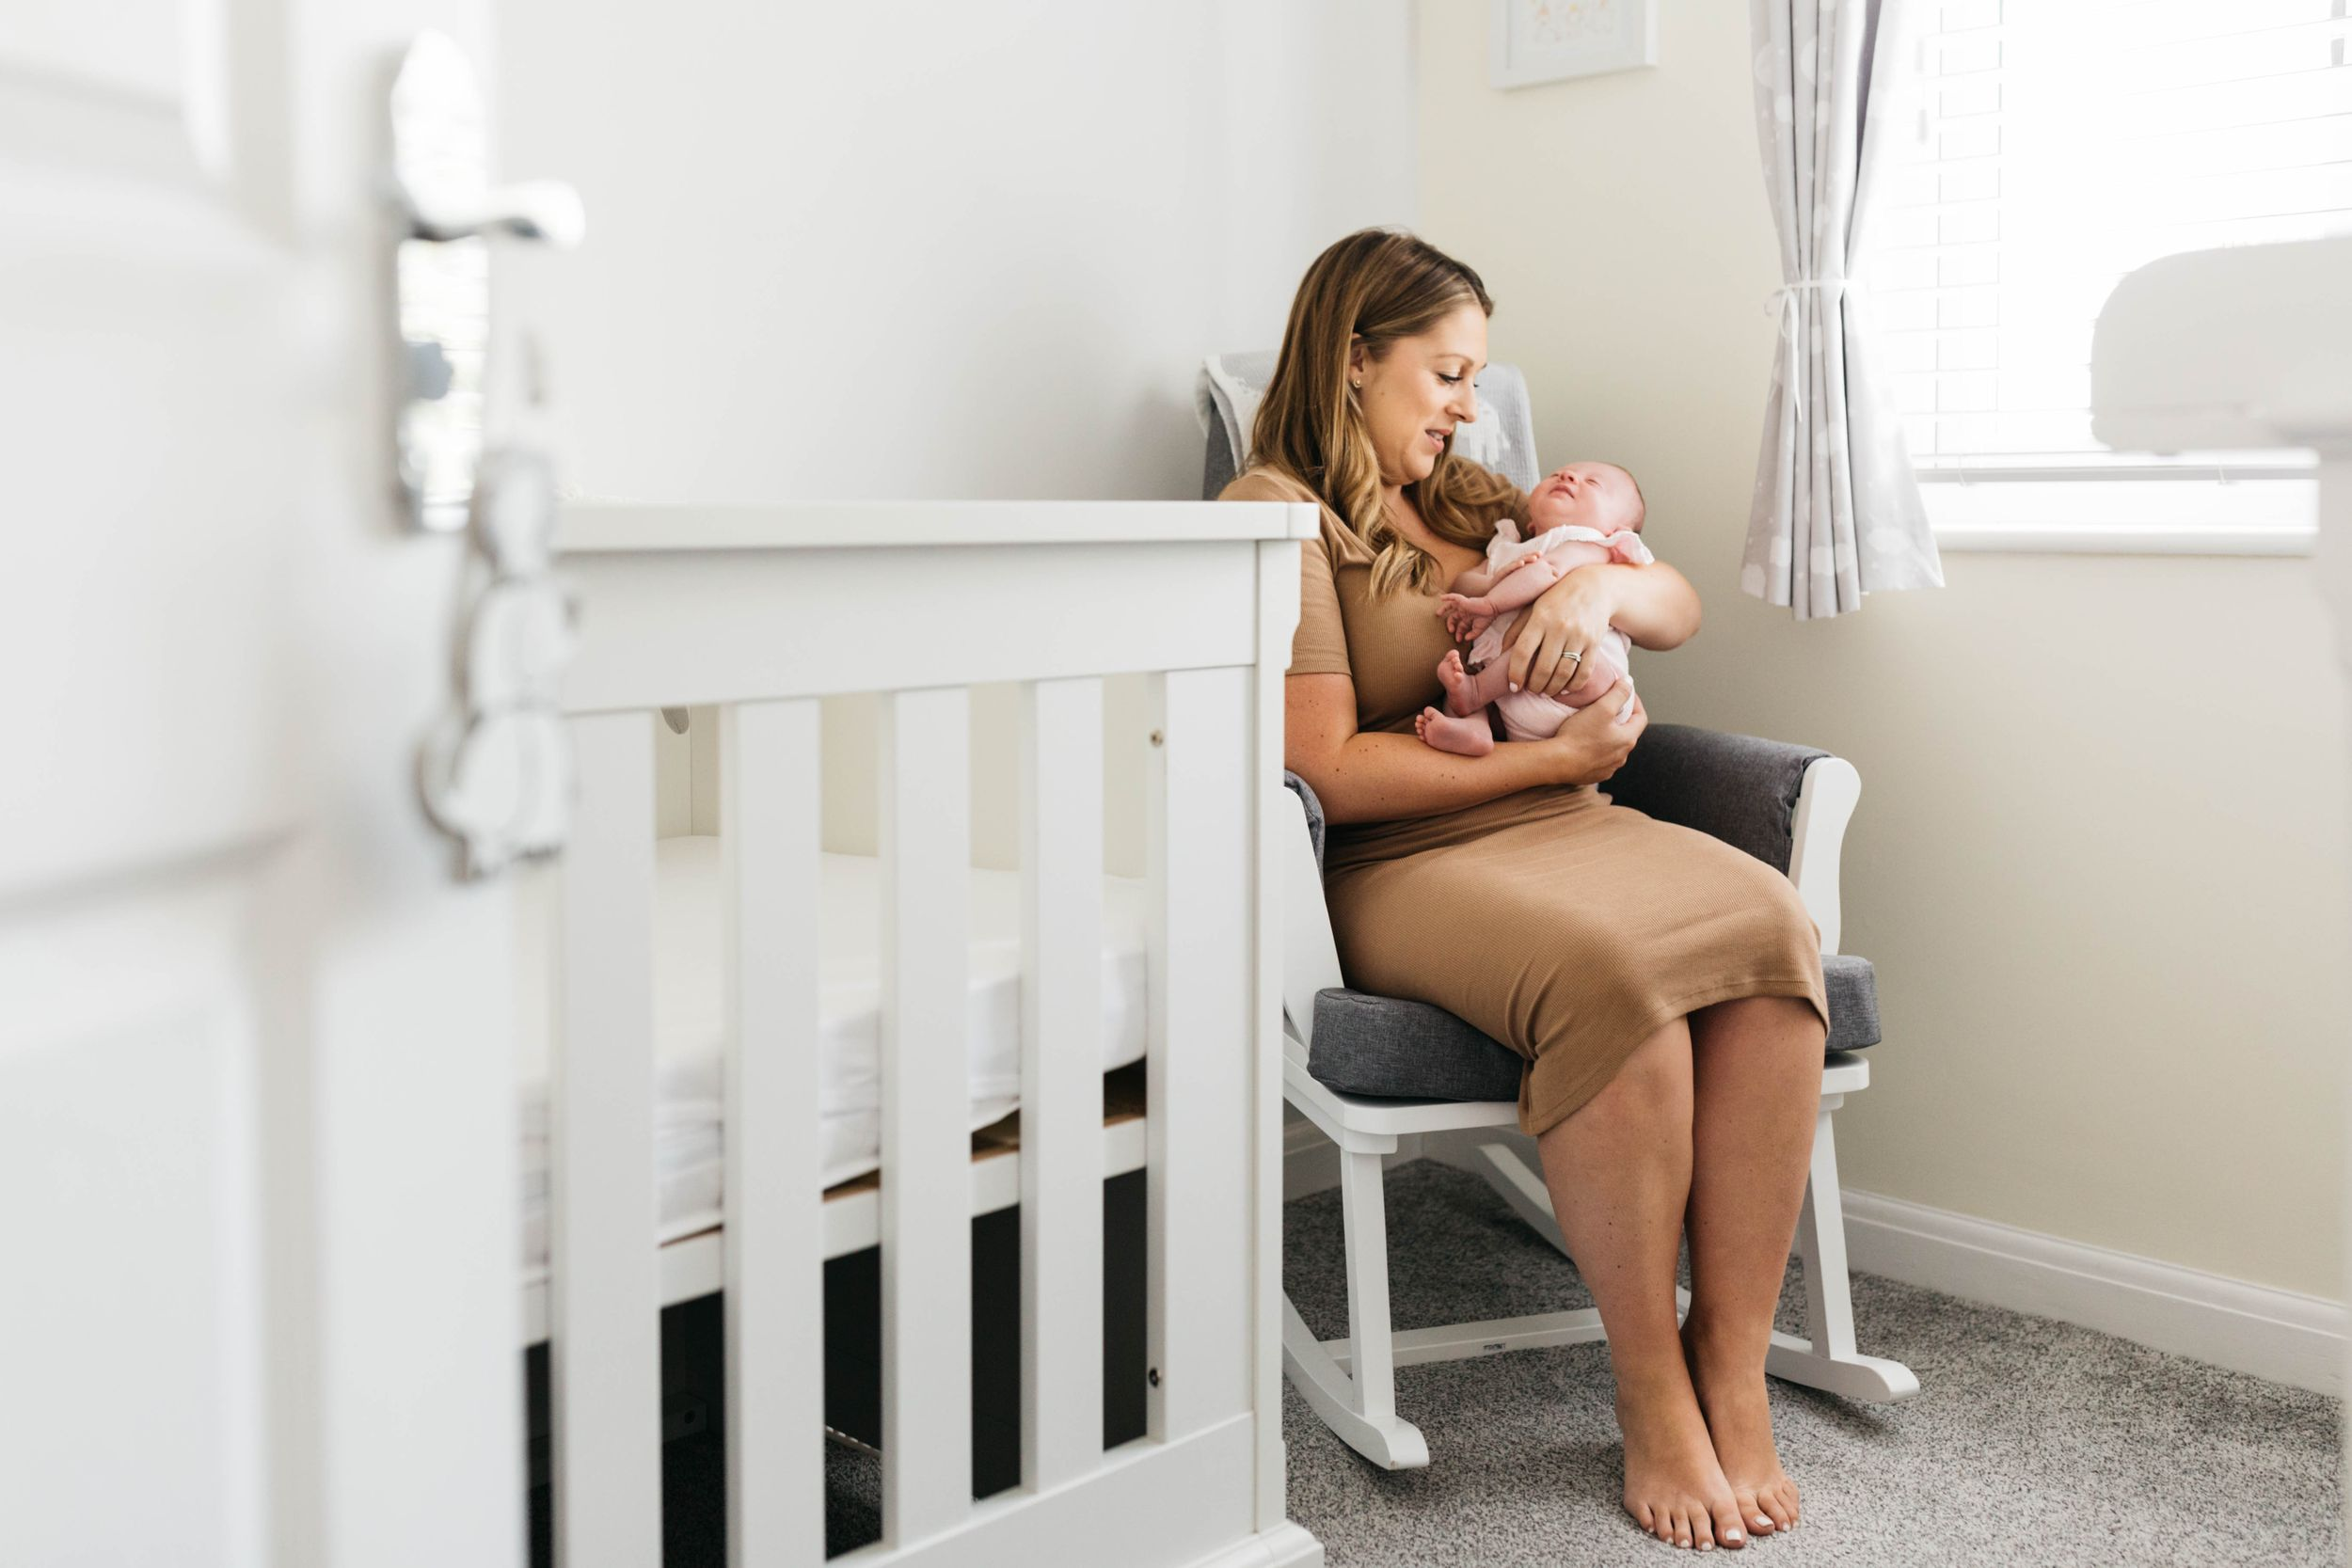 mum sitting in rocking in baby room holding newborn daughter